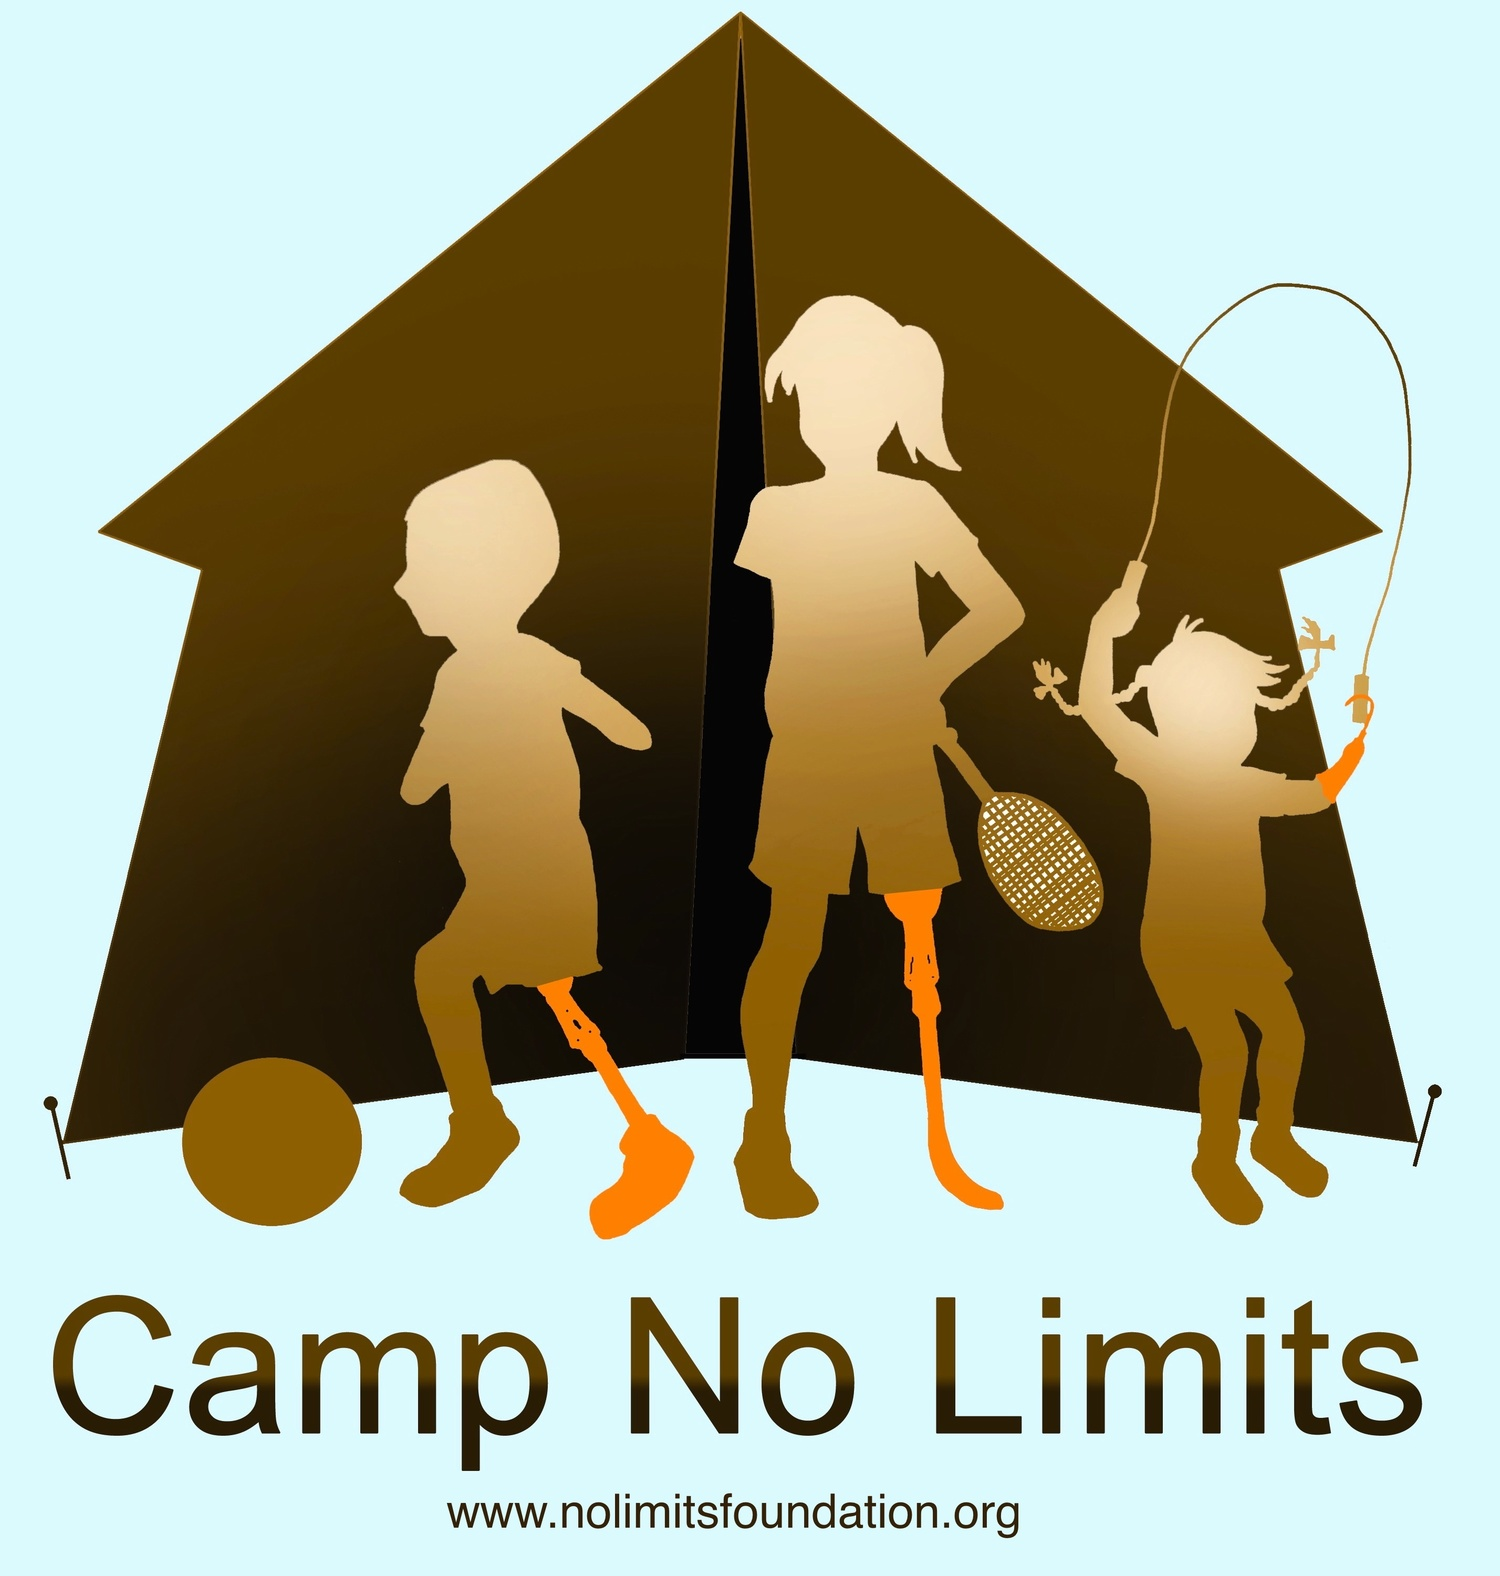 Camp No Limits